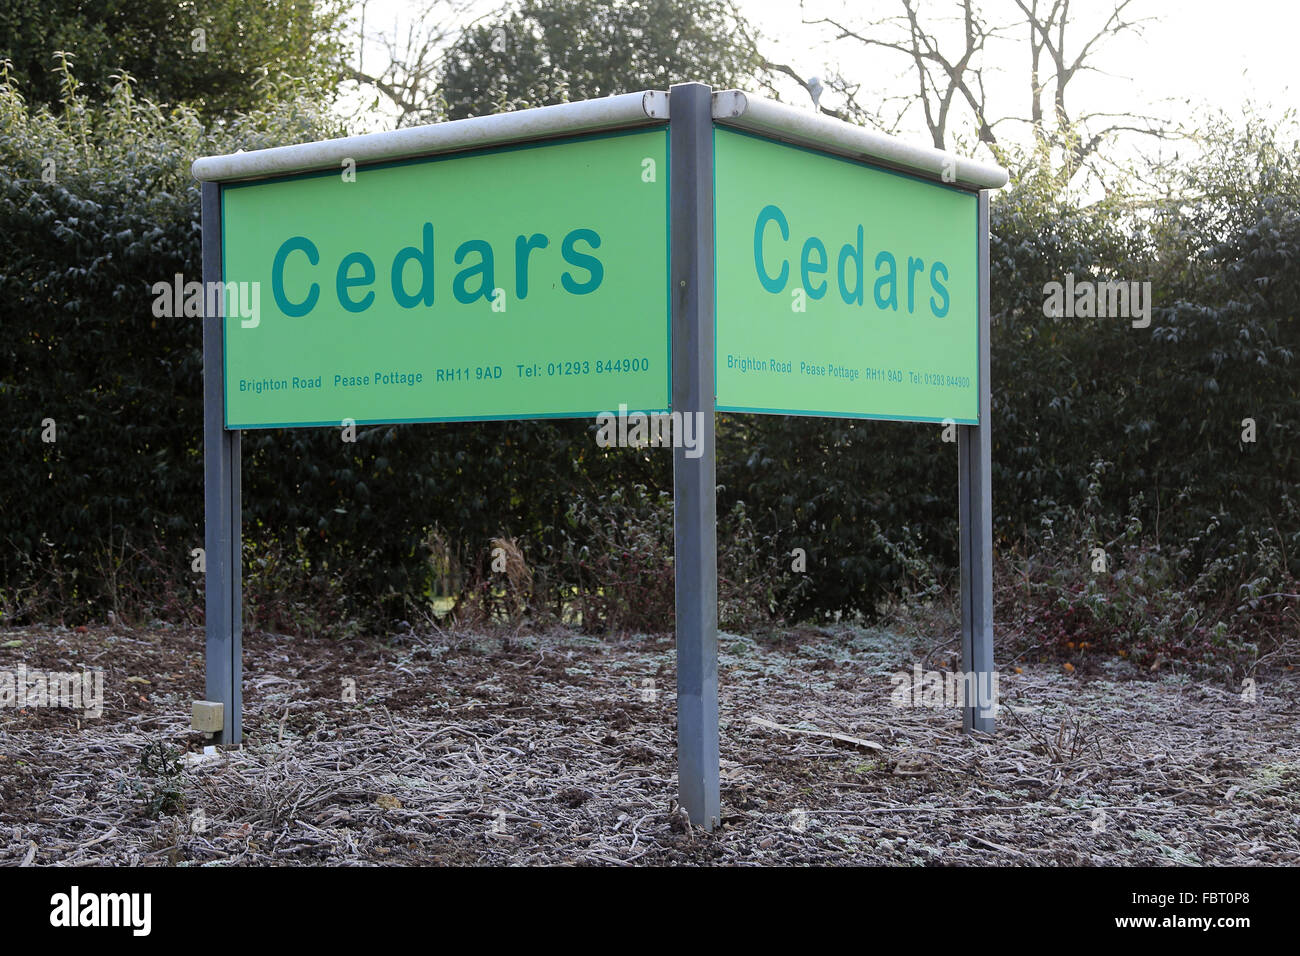 Cedars Immigration removal centre Gatwick West Sussex a23 - Stock Image